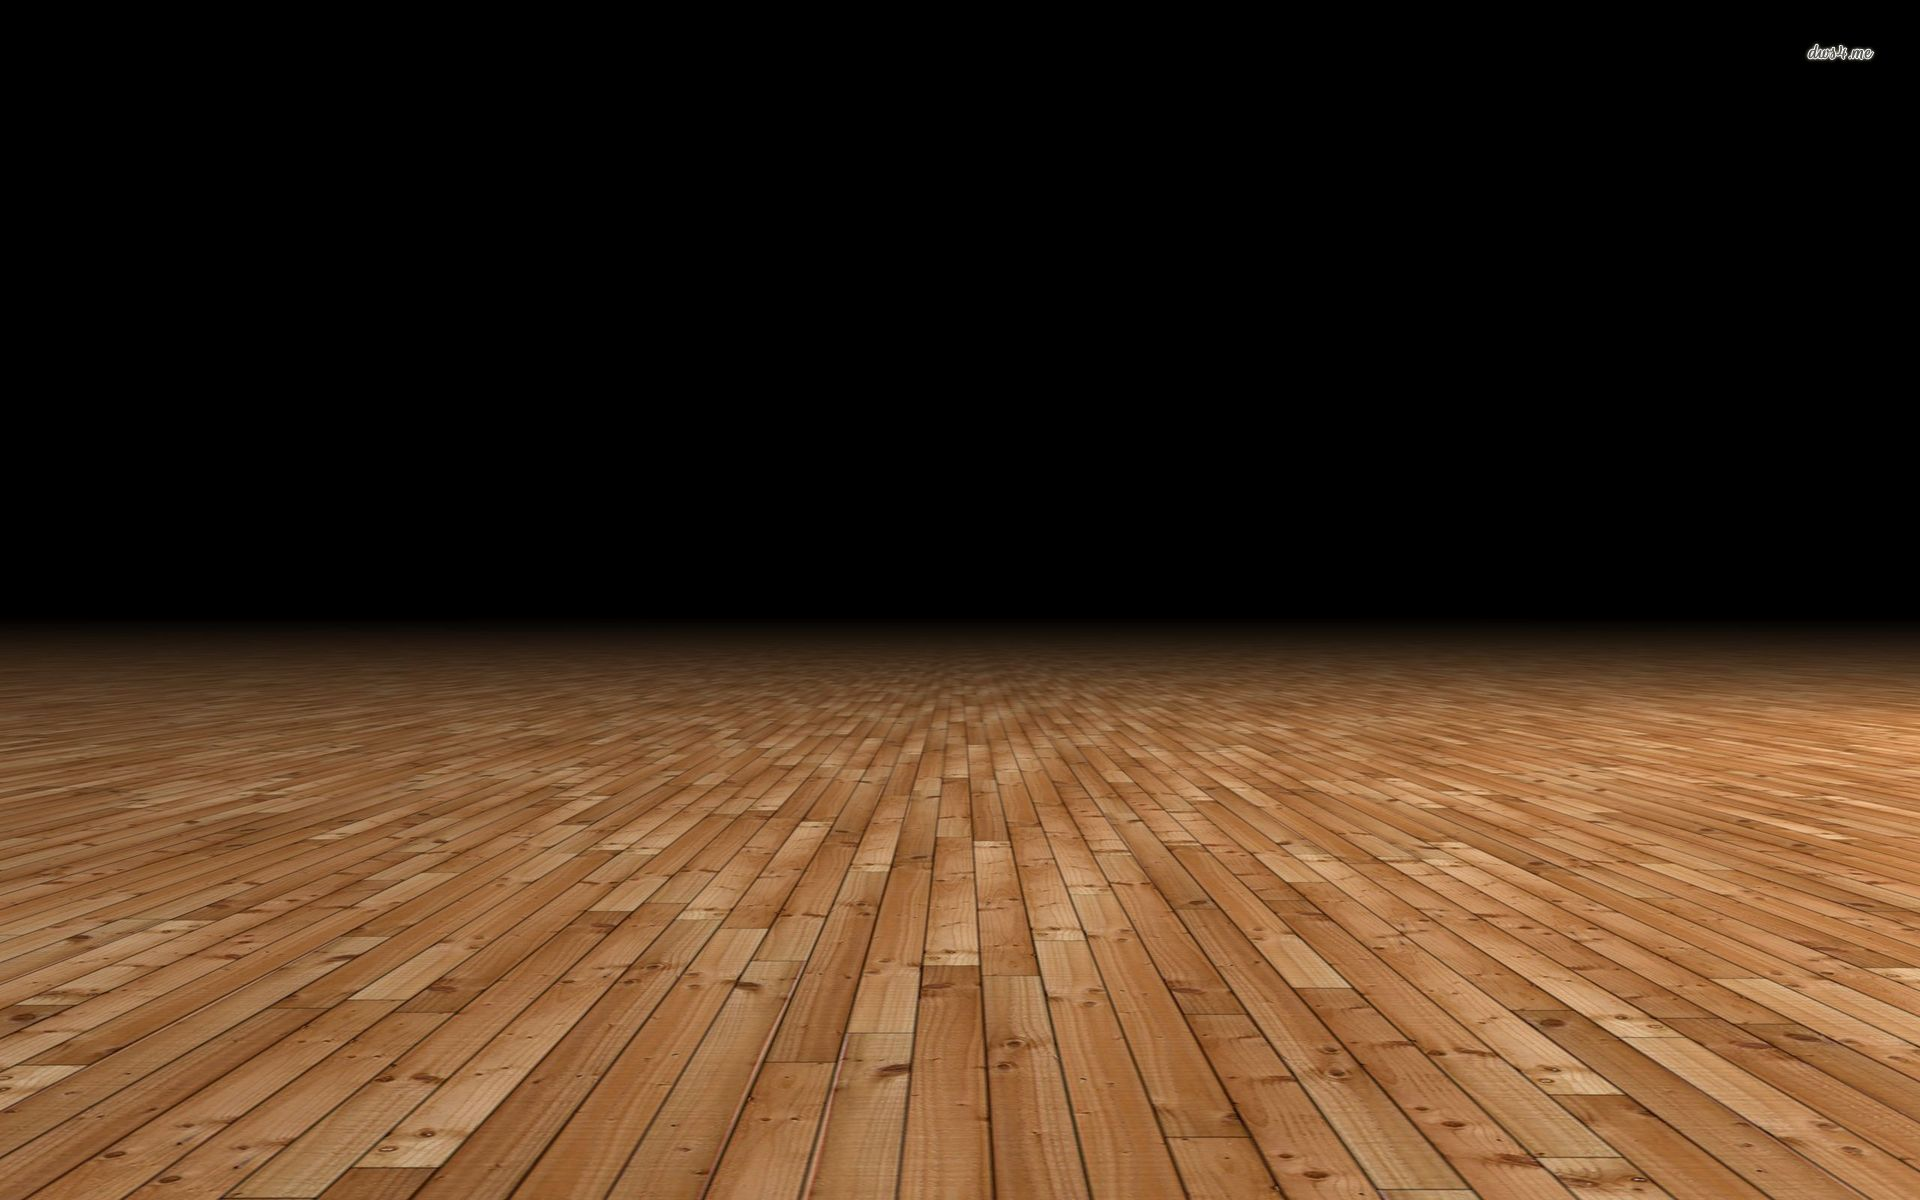 hardwood wallpaper